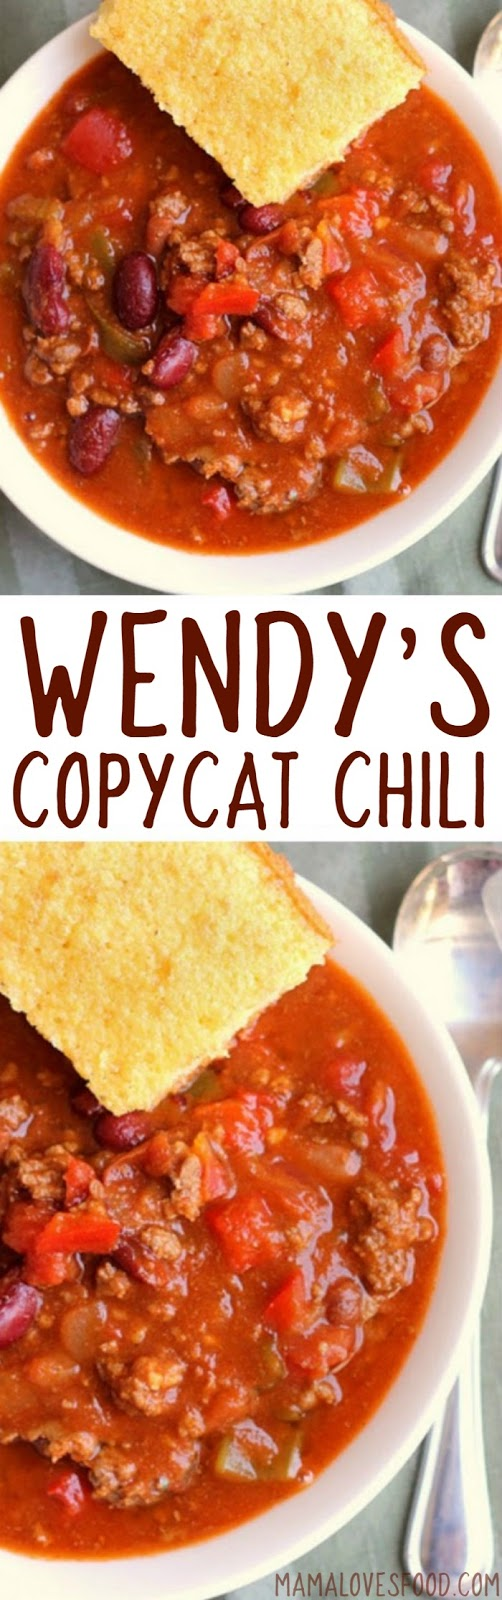 Mama Loves Food Wendy S Chili Copycat Recipe How To